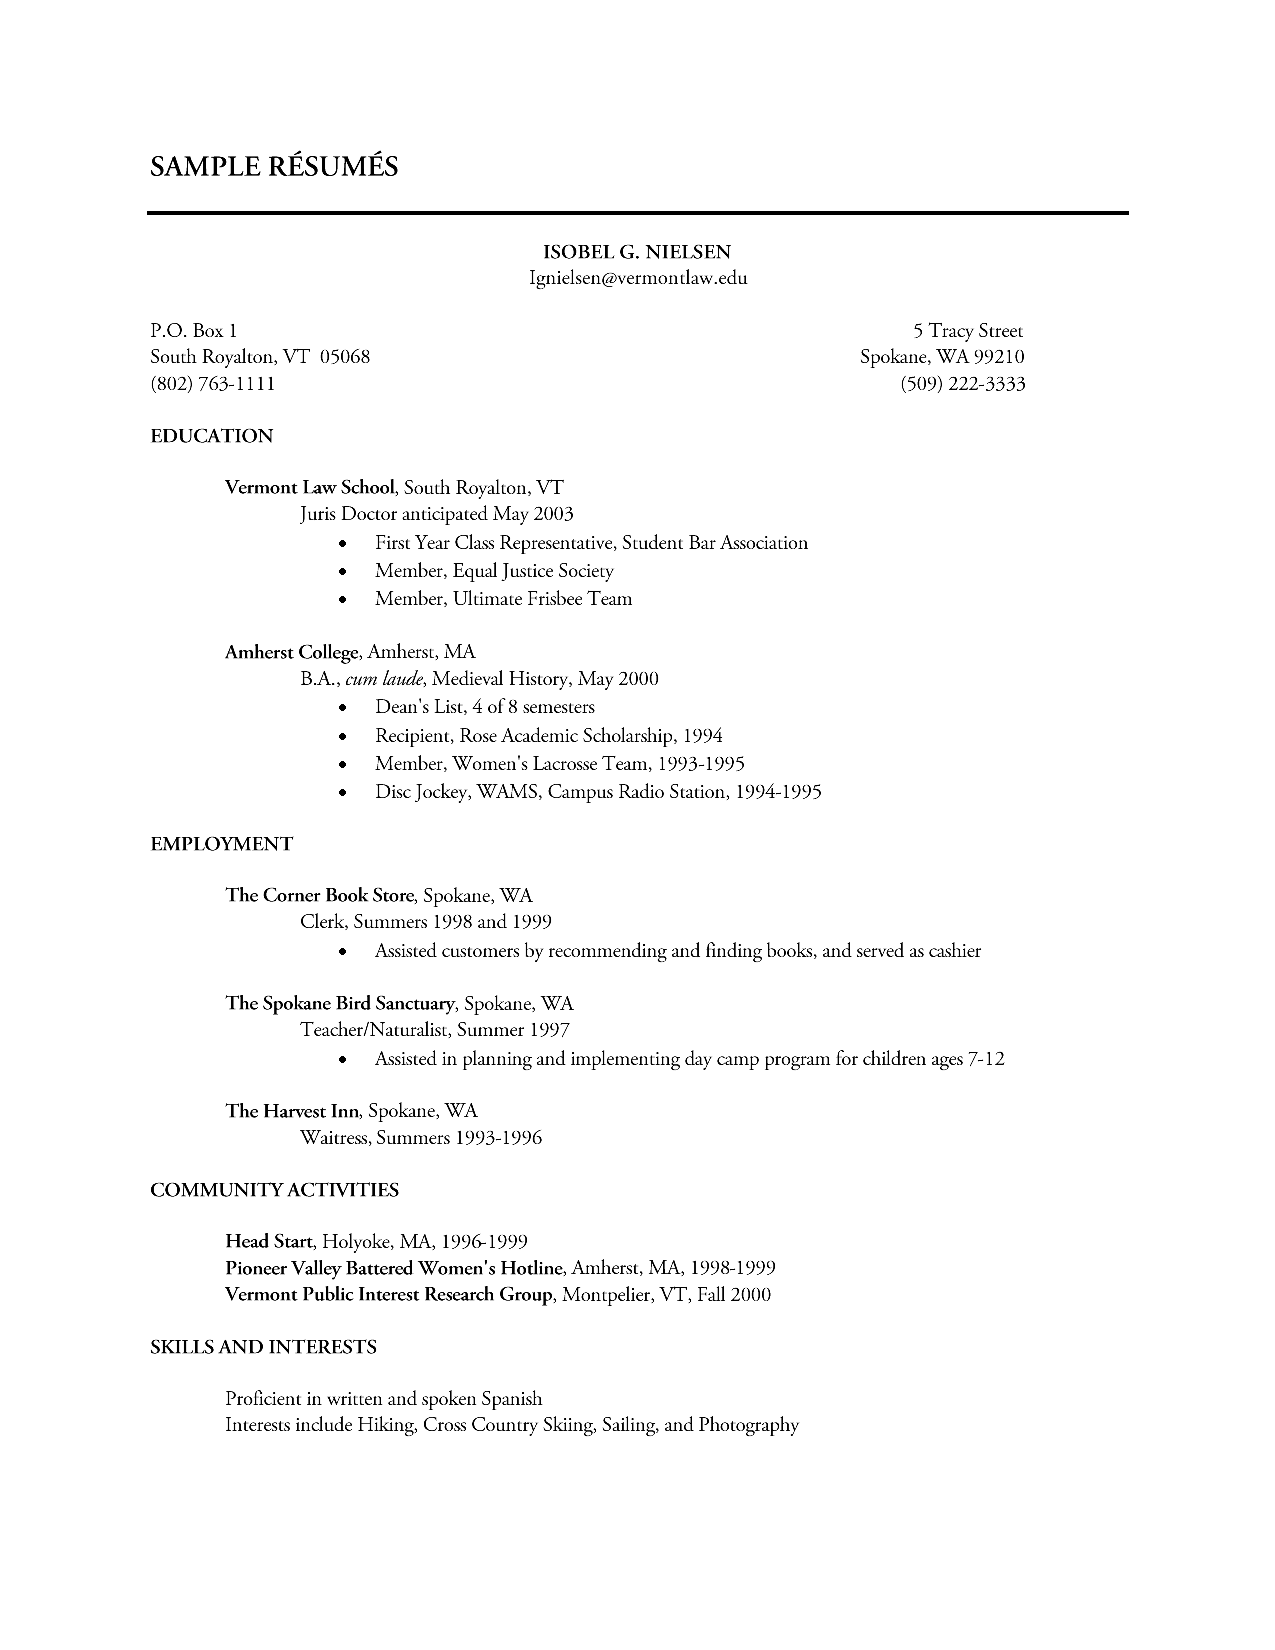 Resume Interests Examples Sample Resume Showing Volunteer Work  Resume Sample Volunteer Ngo